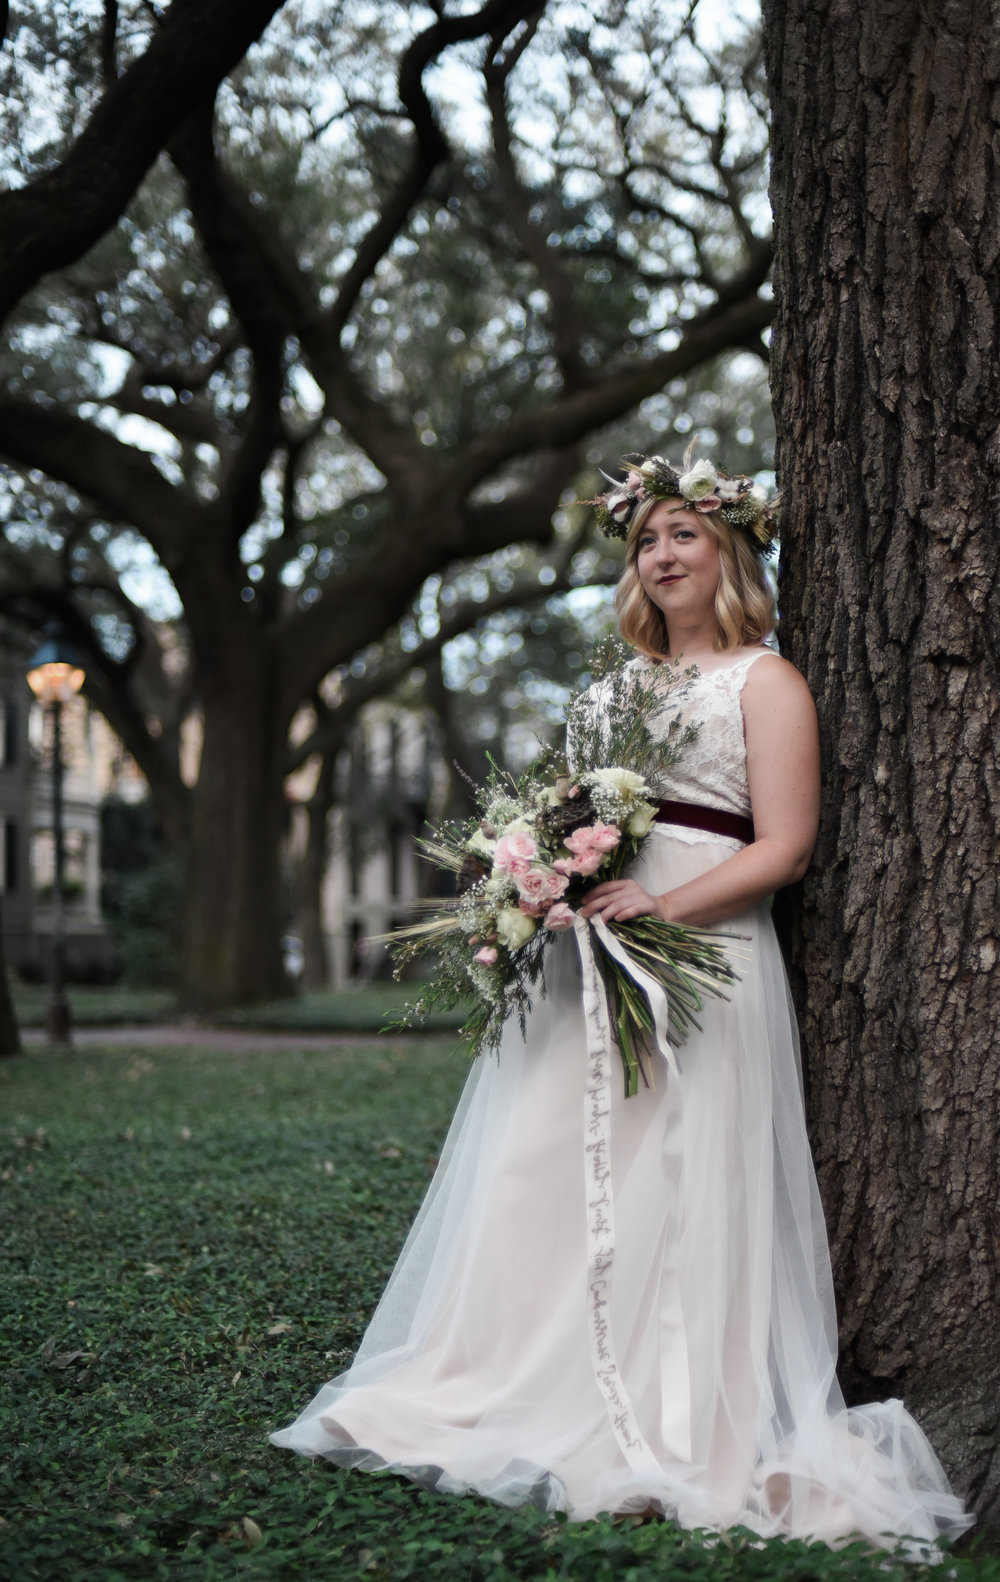 daniel-eastwood-photography-apt-b-photography-7553-ti-adora-ivory-and-beau-bridal-boutique-savannah-wedding-dresses-savannah-bridal-gowns-savannah-bridal-southern-bride-hilton-head-bridal-boho-bride-savannah-wedding-florist-savannah-wedding-planner-3.JPG